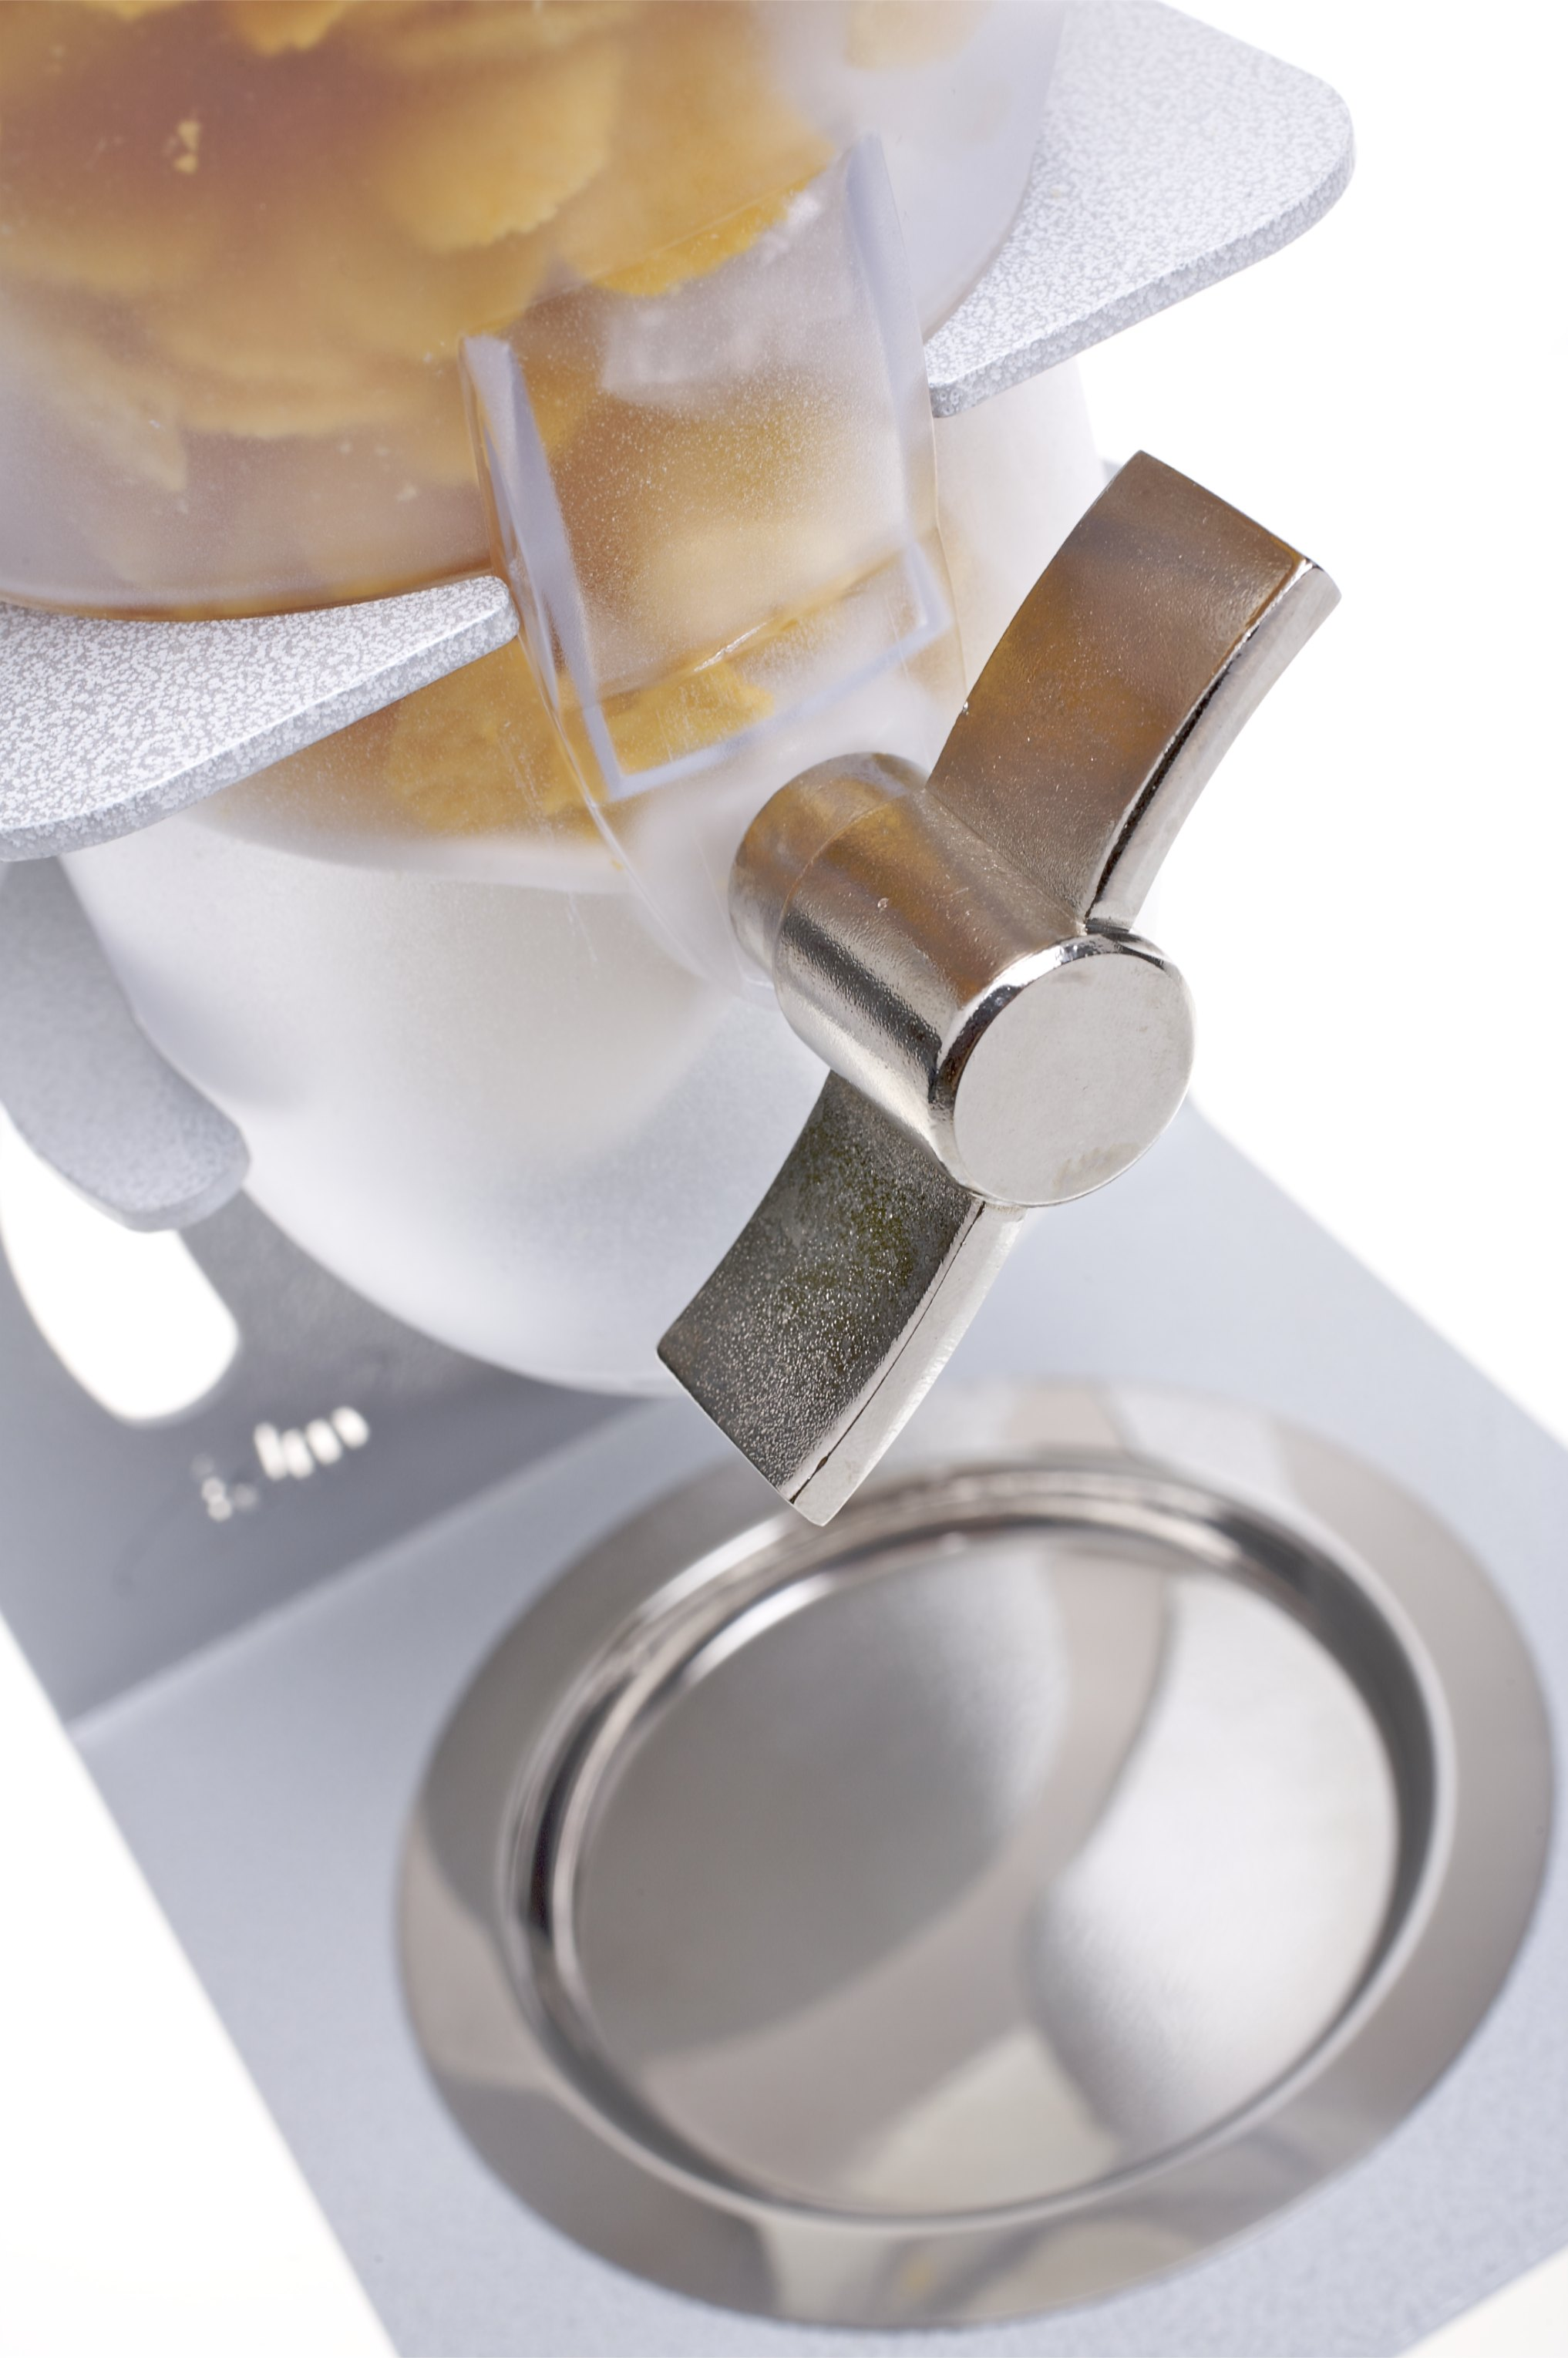 QEC offers a unique range of dry food dispensers for commercial, retail and private use.Utilizing high quality materials and exceptional designs - KELL100 Australian Distributor.